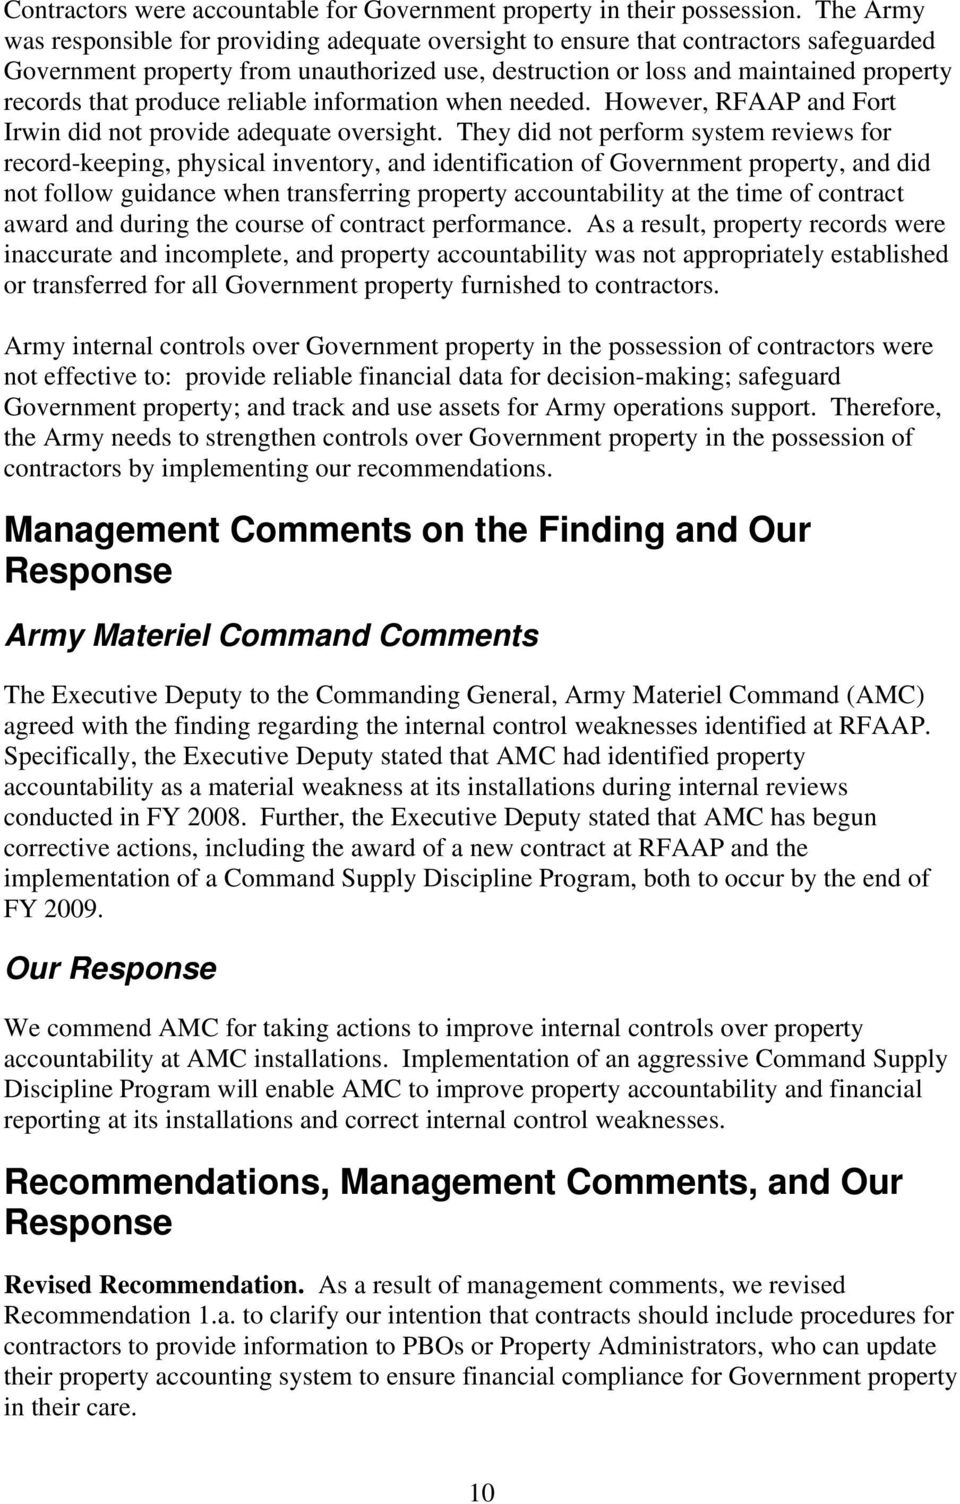 produce reliable information when needed. However, RFAAP and Fort Irwin did not provide adequate oversight.